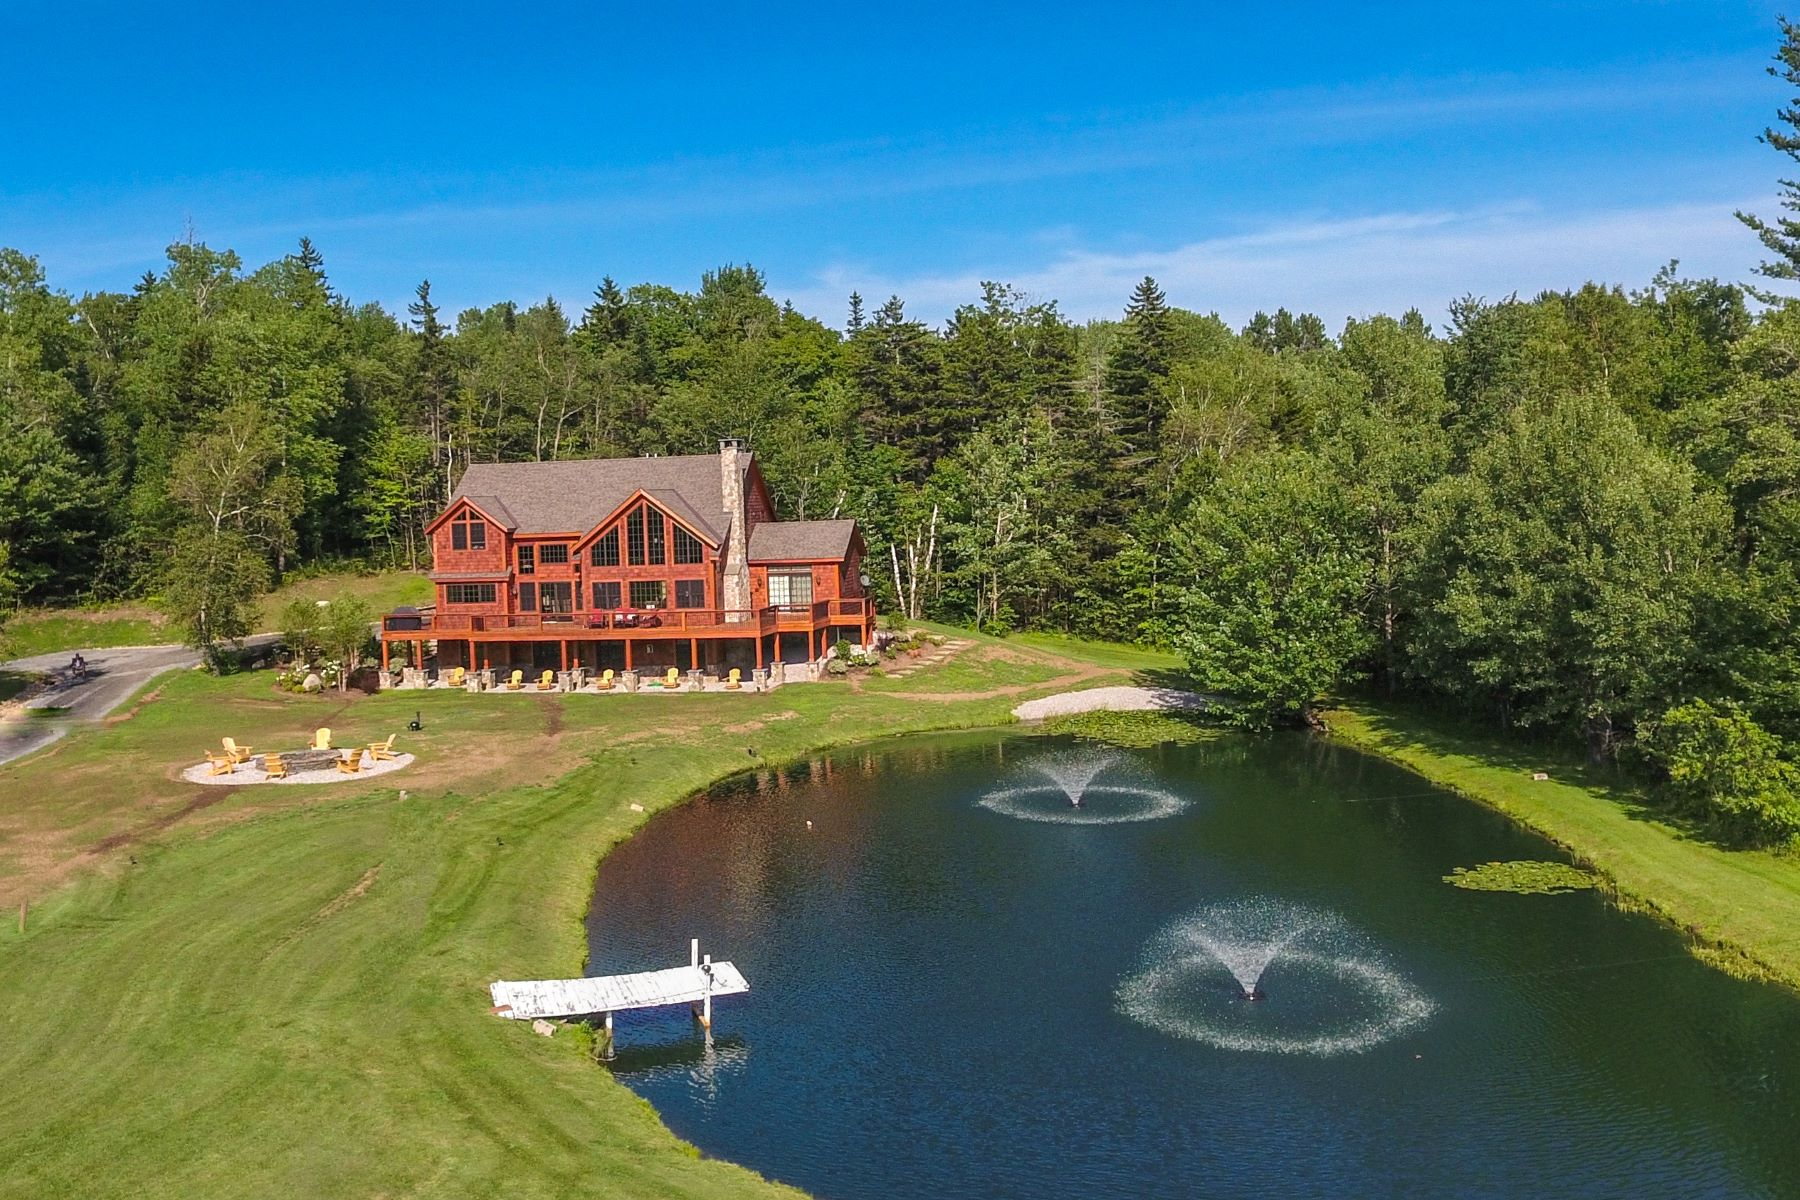 Casa Unifamiliar por un Venta en Spectacular Country Retreat 453 Coldbrook Wilmington, Vermont, 05363 Estados Unidos